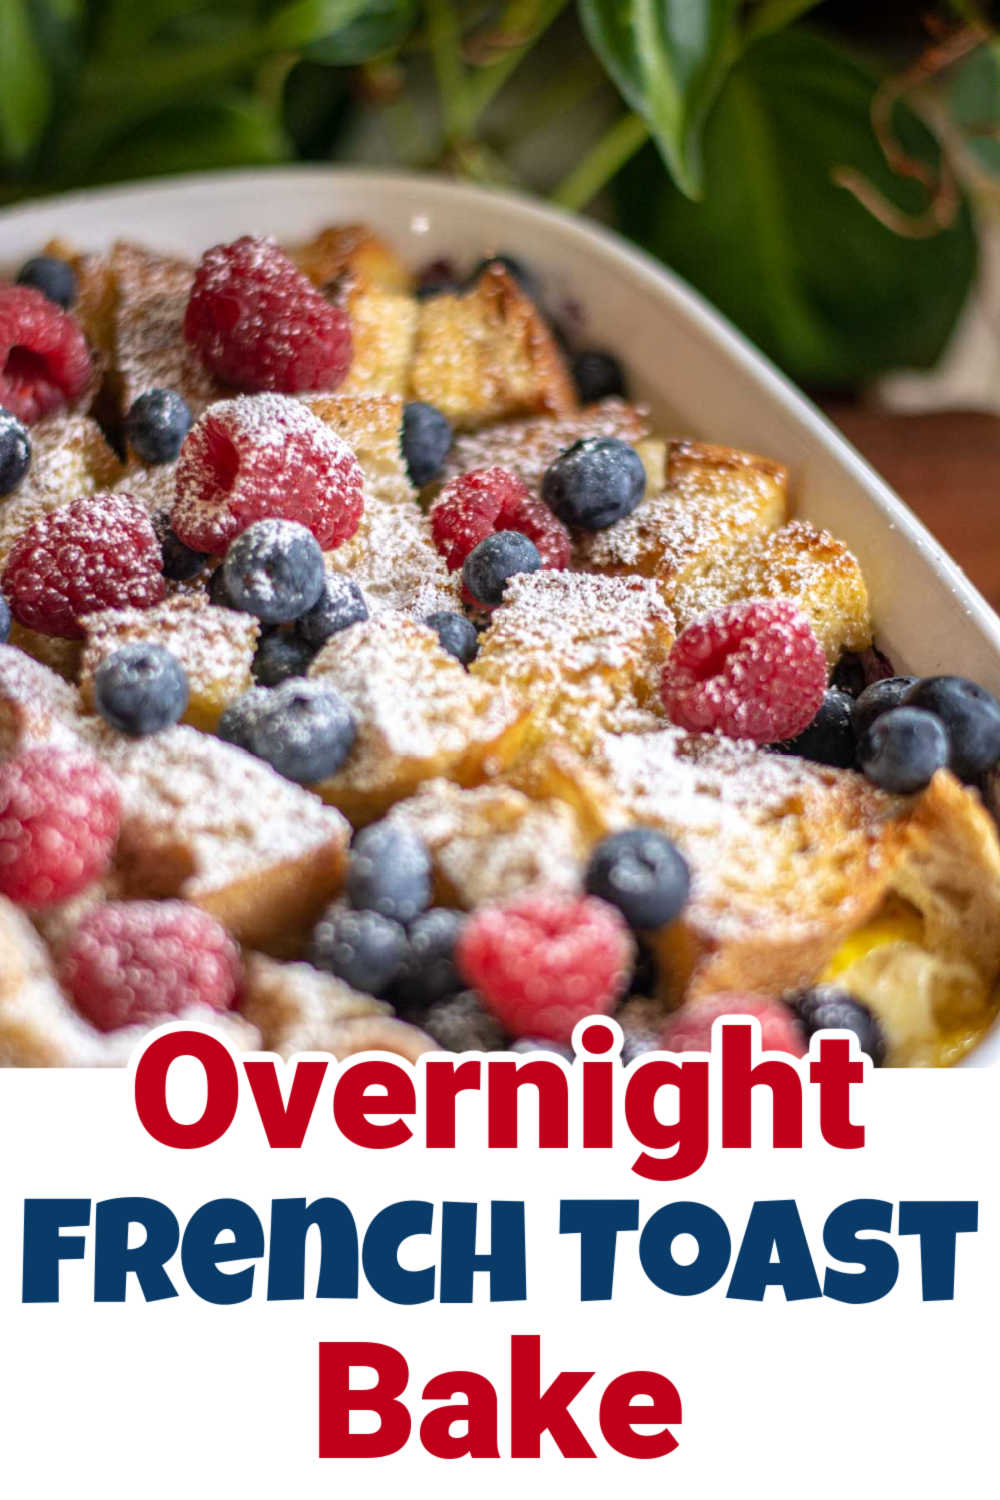 Overnight Triple Berry French Toast Bake {Make Ahead}